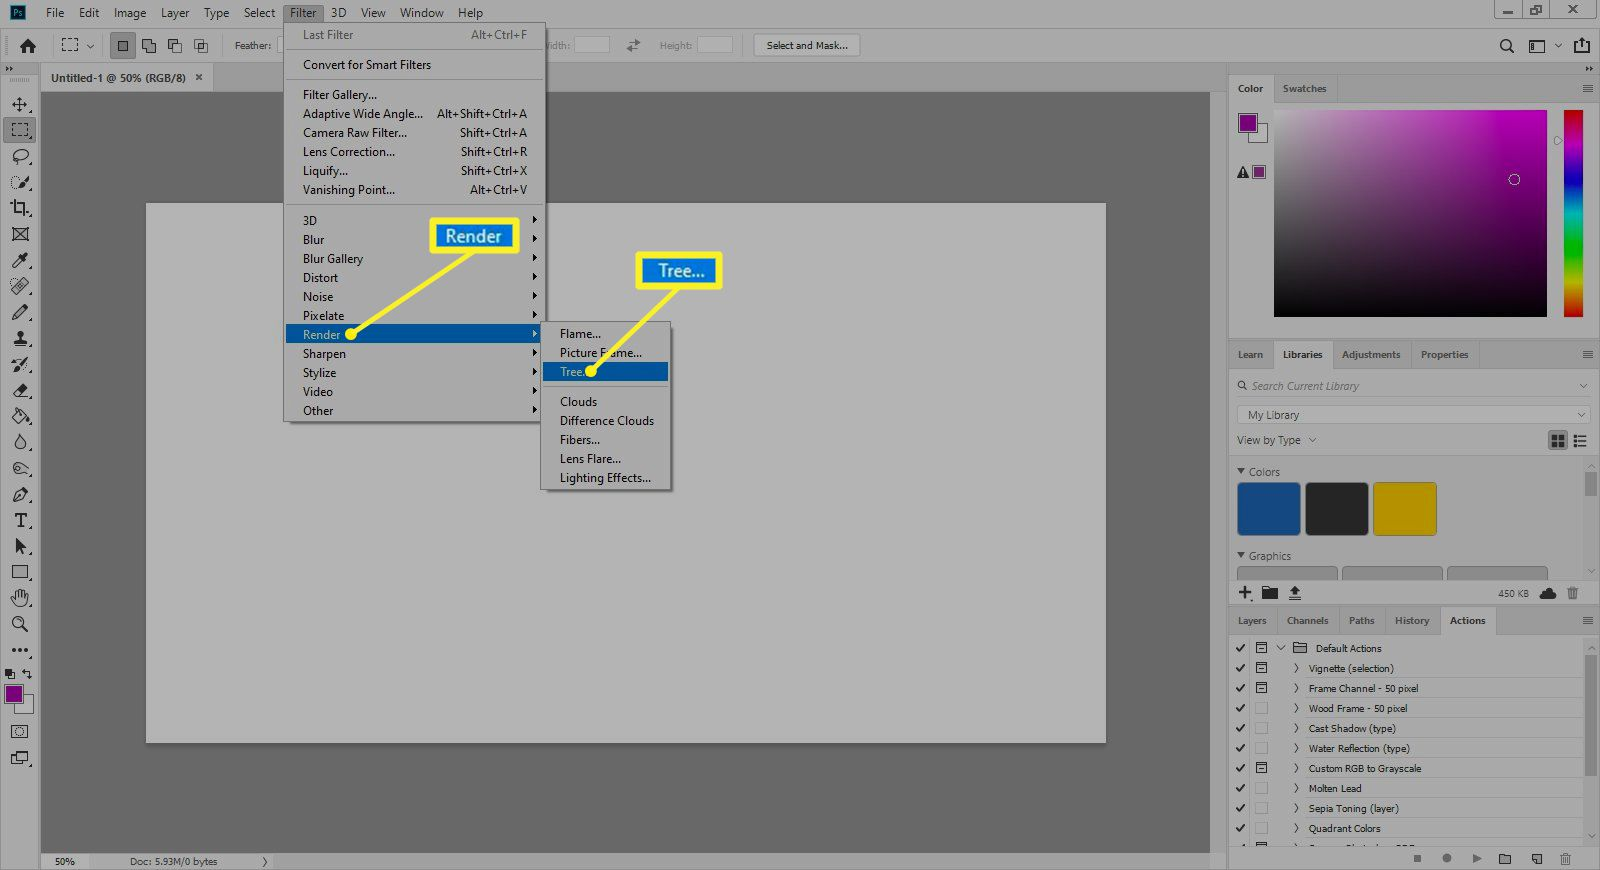 Photoshop Filter menu with Render and Tree selected